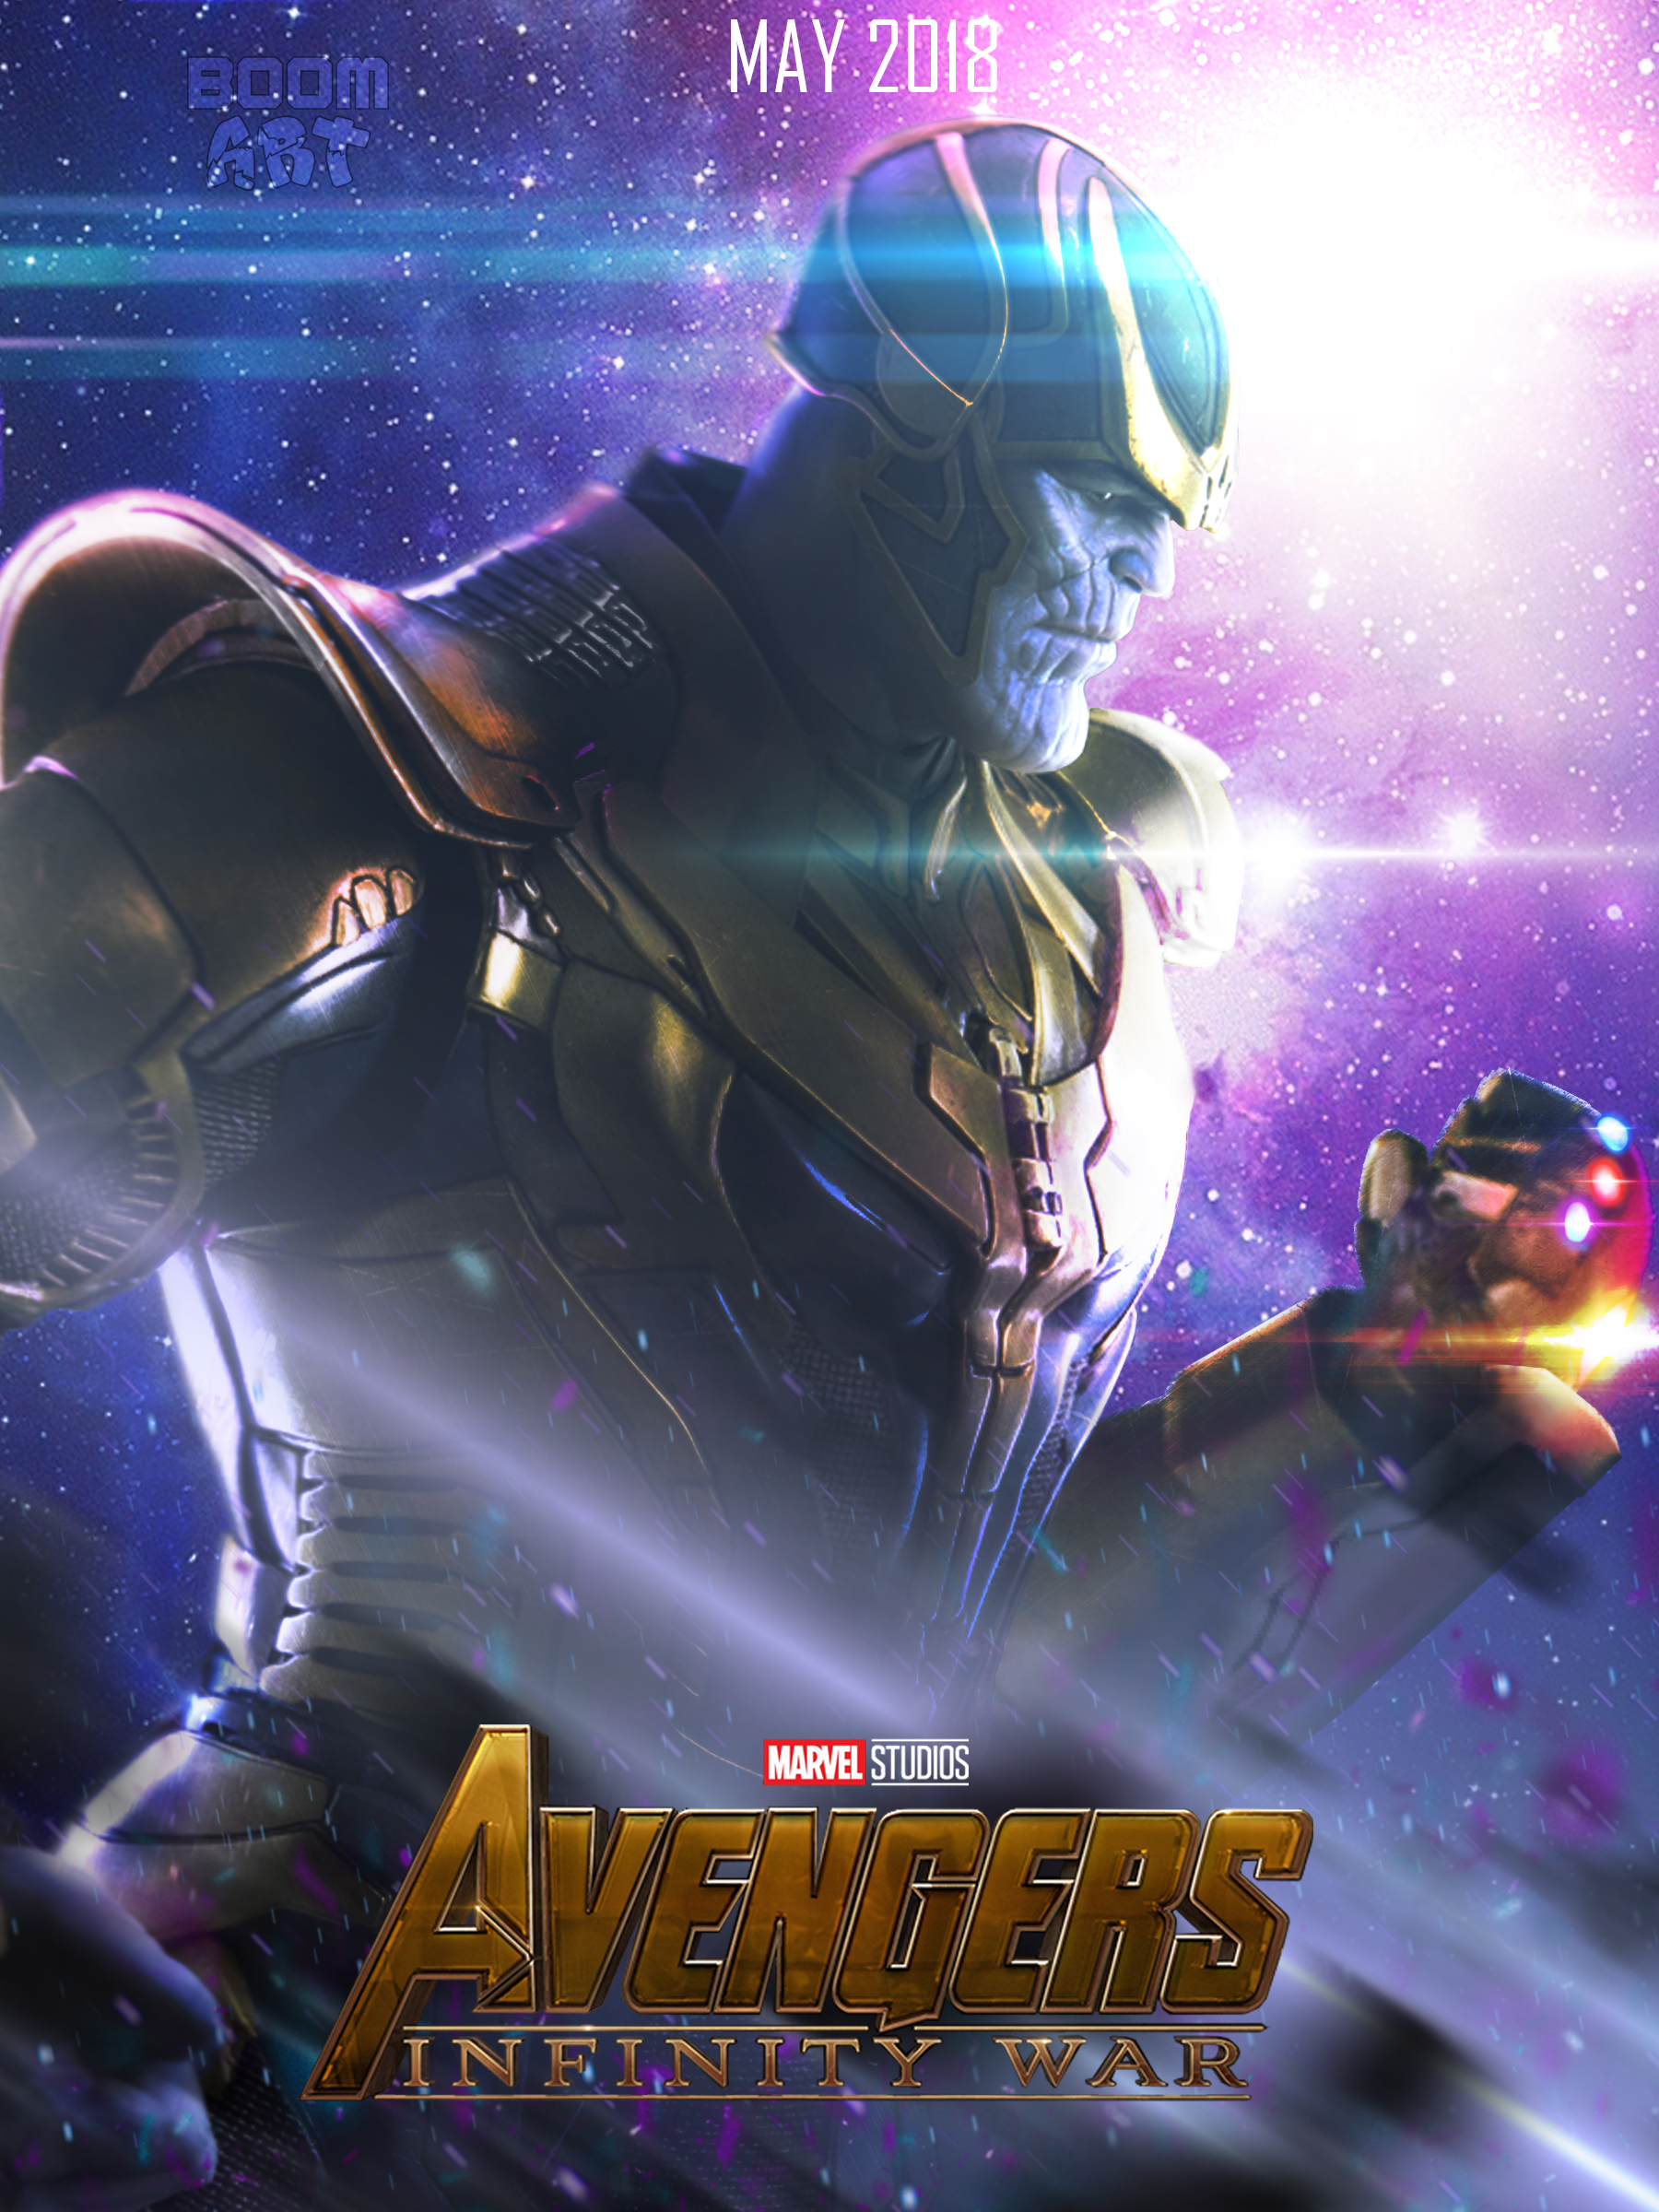 Avengers: Infinity War THANOS poster 3 by BoomArt16 on ...